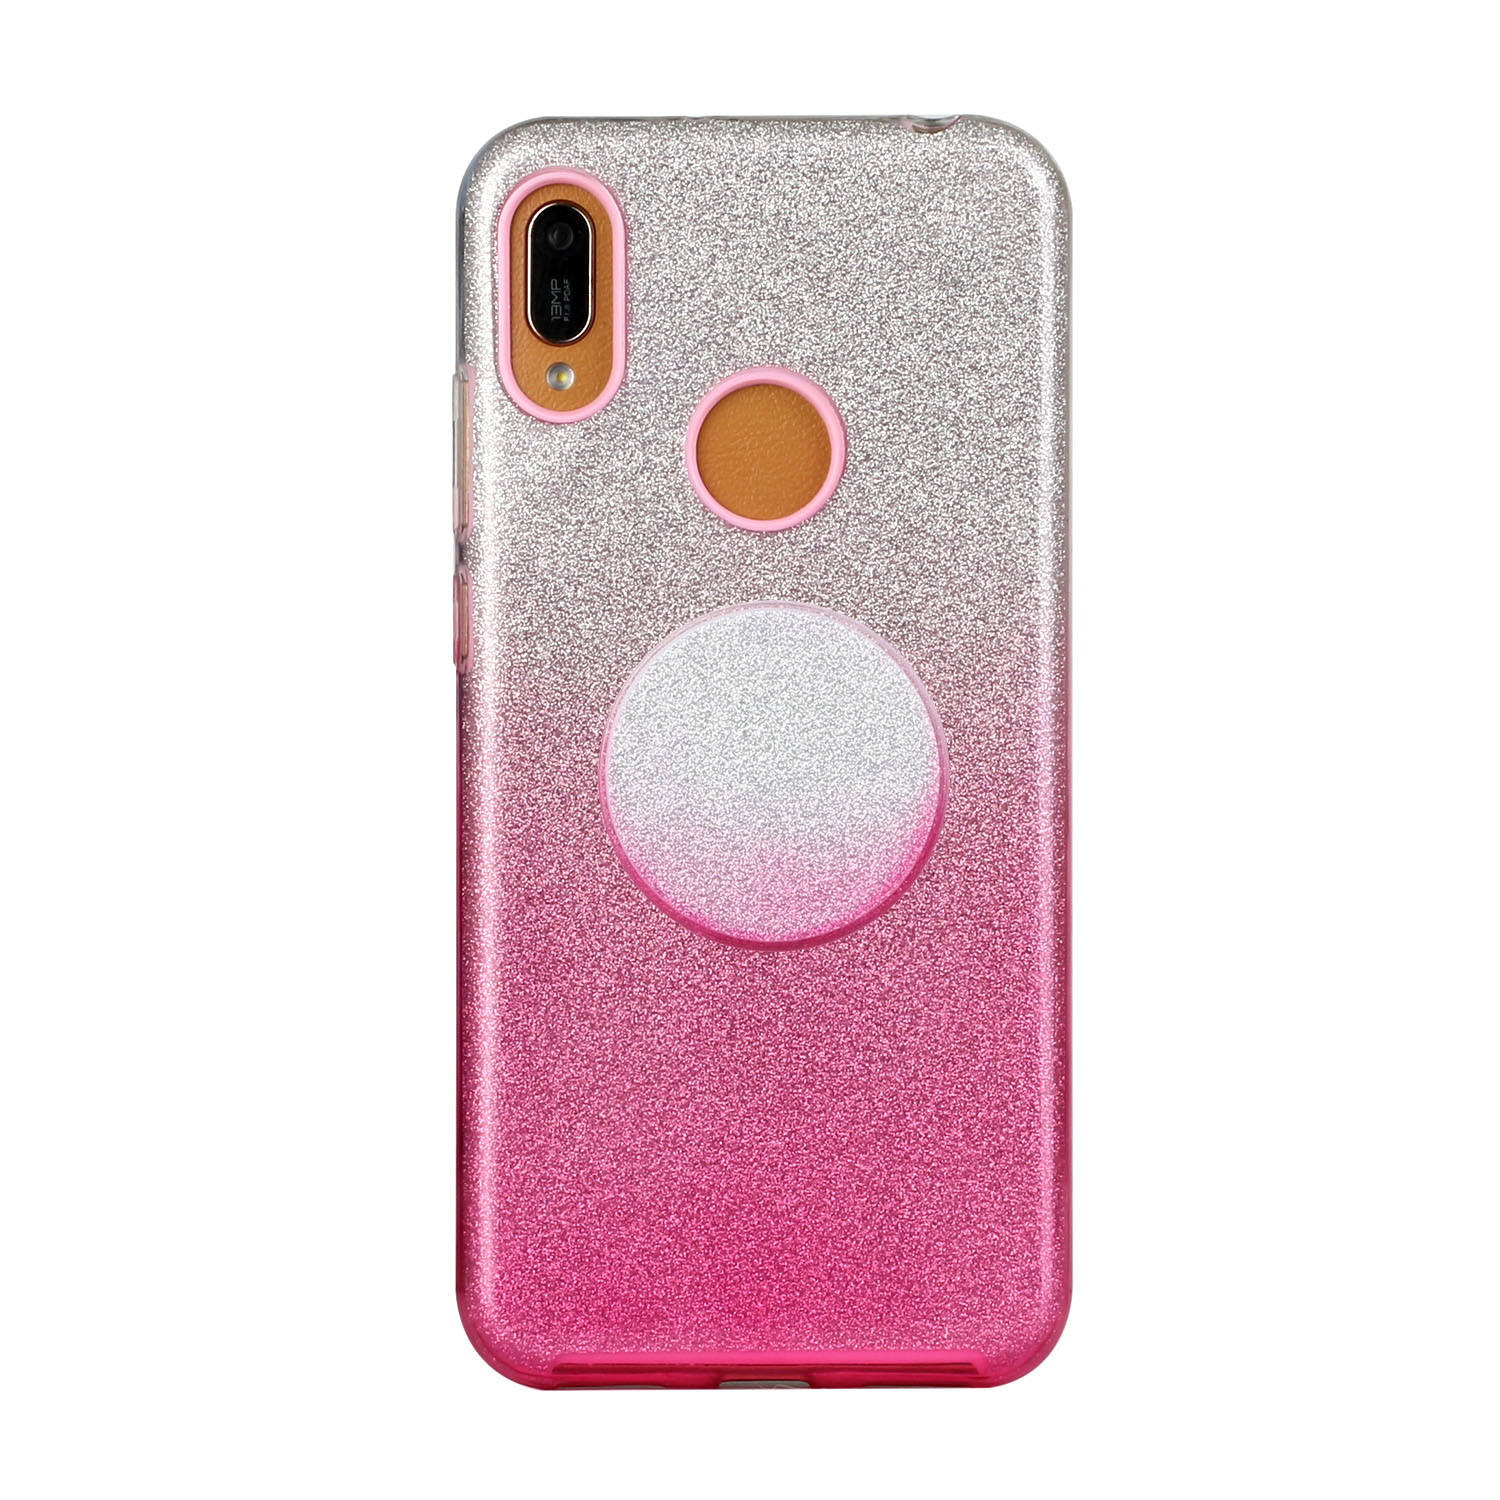 For HUAWEI Mate 30/Nova 5I pro/Mate 30 Pro/PSmart /Y5P/Y6P 2020 Phone Case Gradient Color Glitter Powder Phone Cover with Airbag Bracket Pink